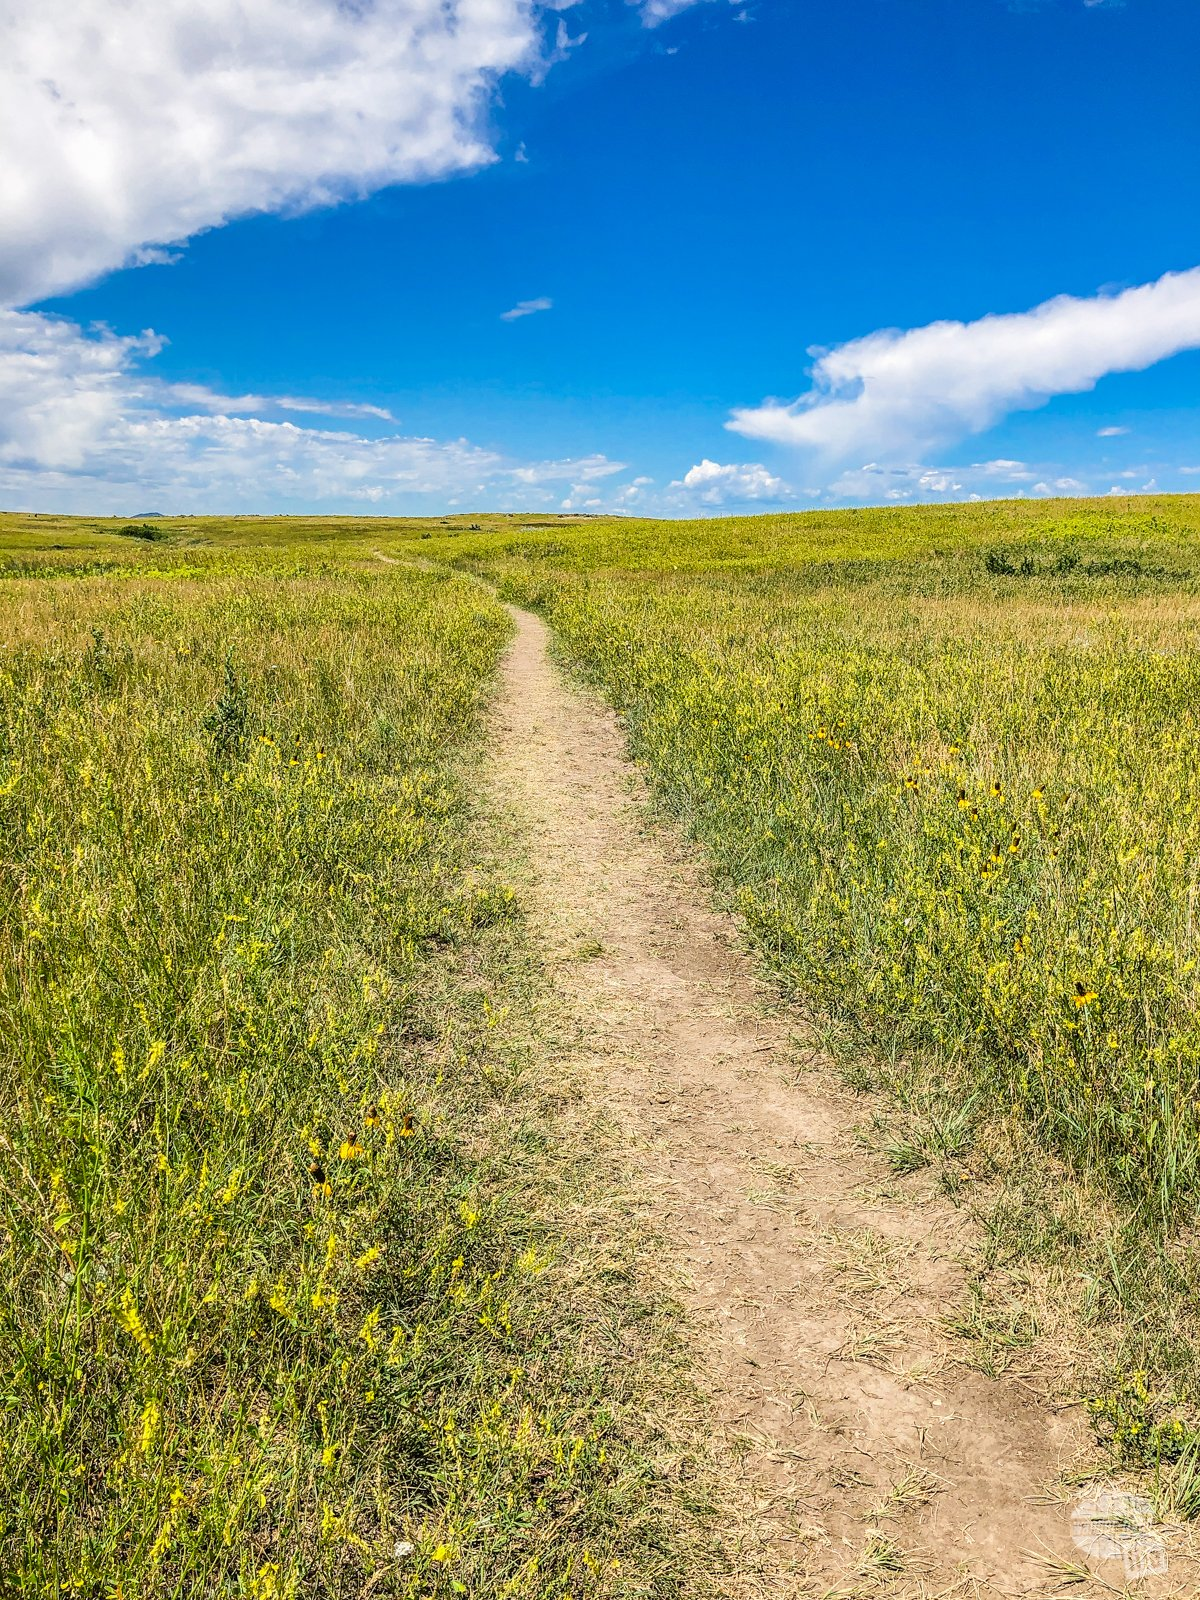 It does not take long getting out on the trails in Theodore Roosevelt National Park before you are surrounded by silence.